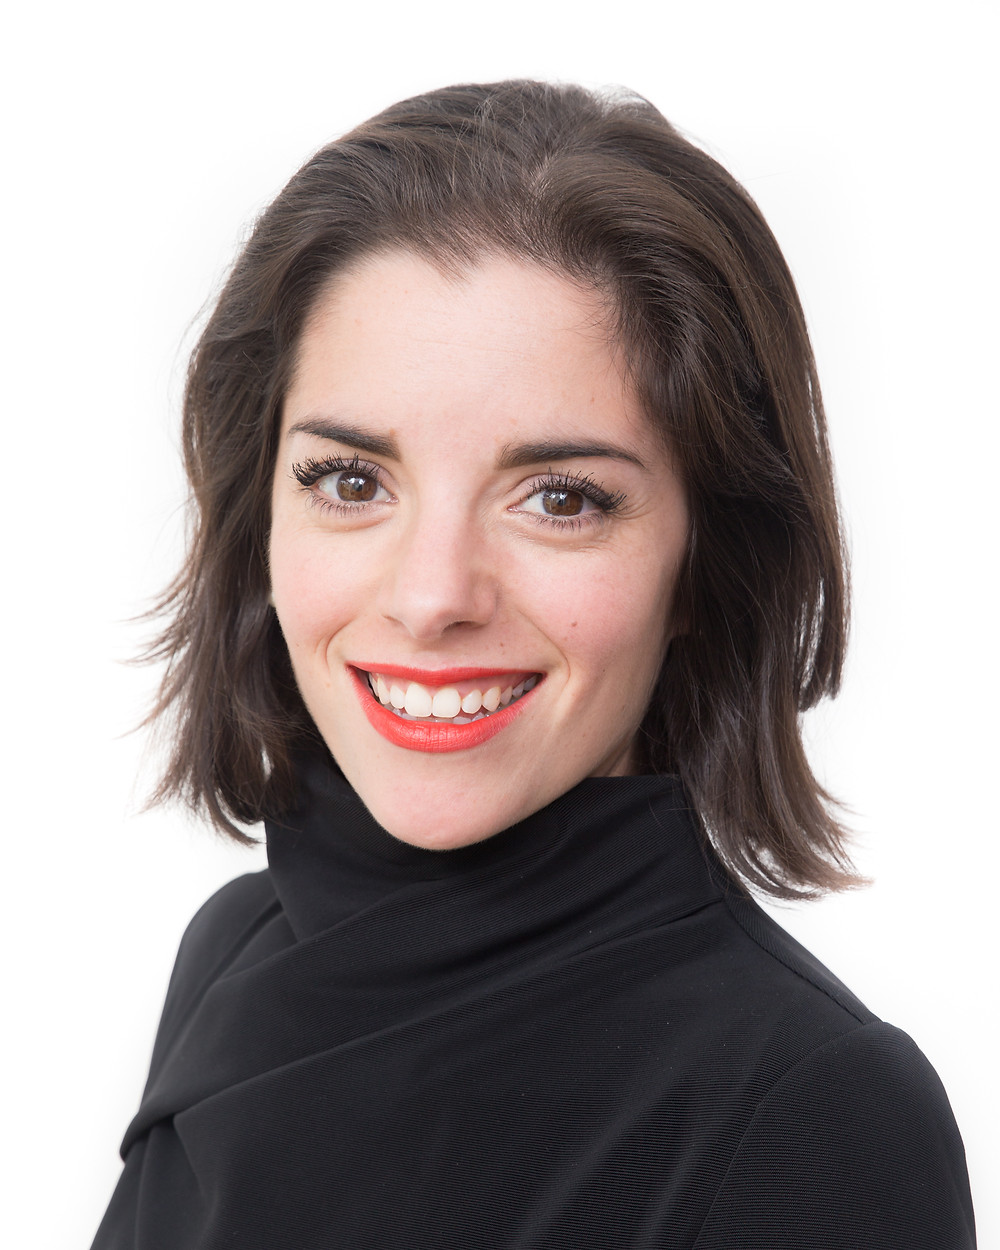 Smart black outfit, strong make up, lucinda price photography headshot cambridge